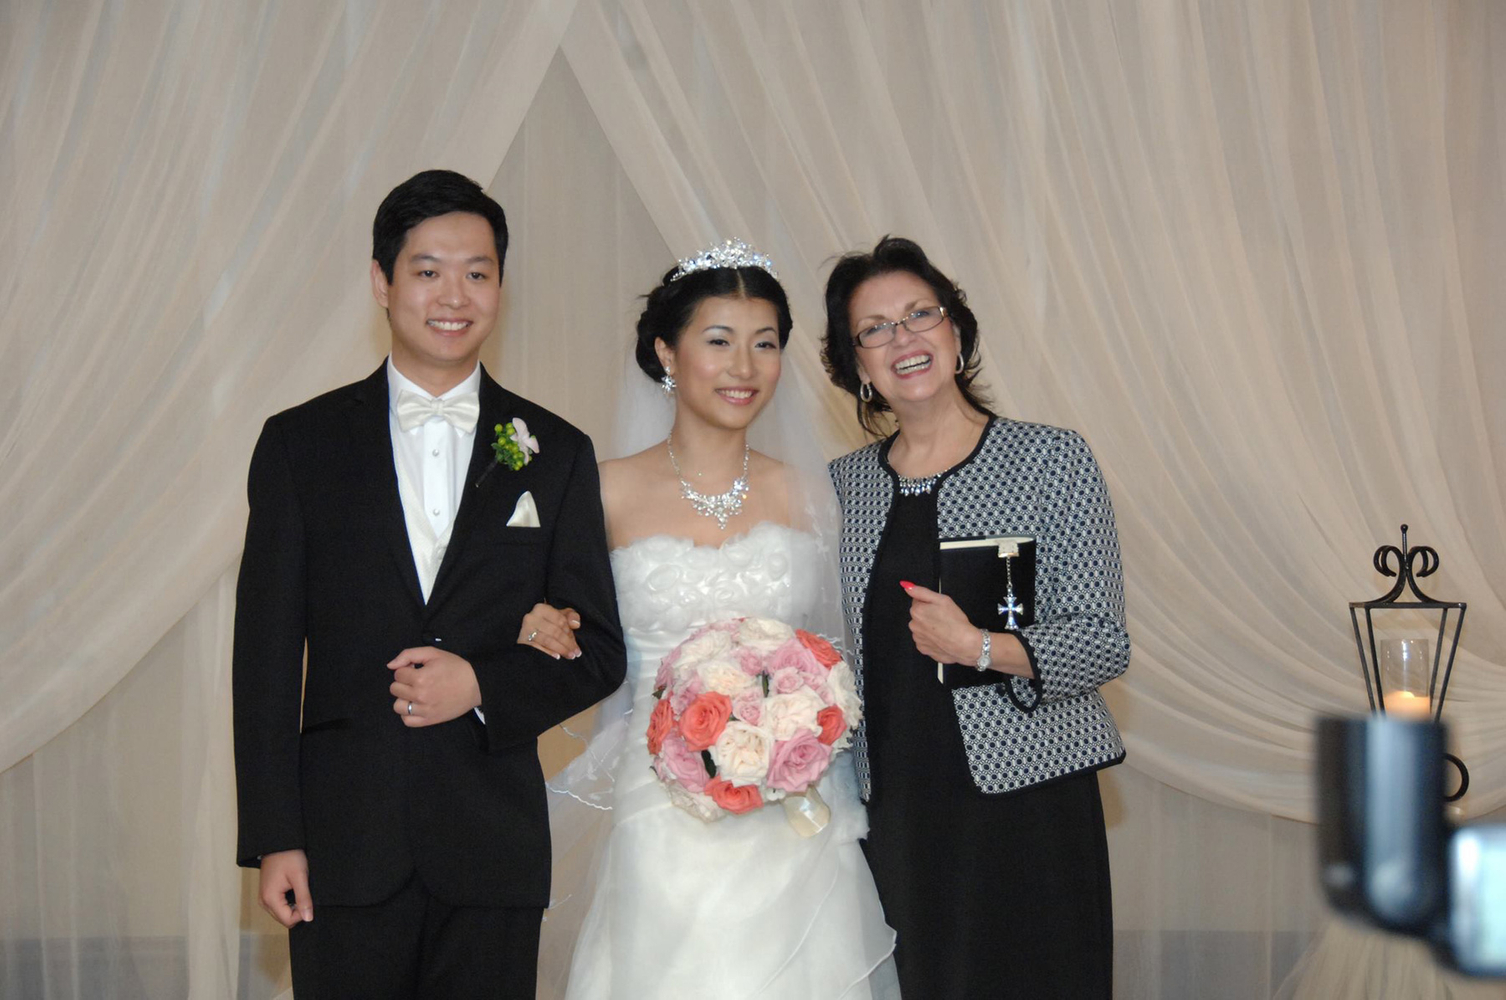 Indoor wedding of asian couple at the Houston Hilton with Minister Lynn Turner of Weddings Performed.